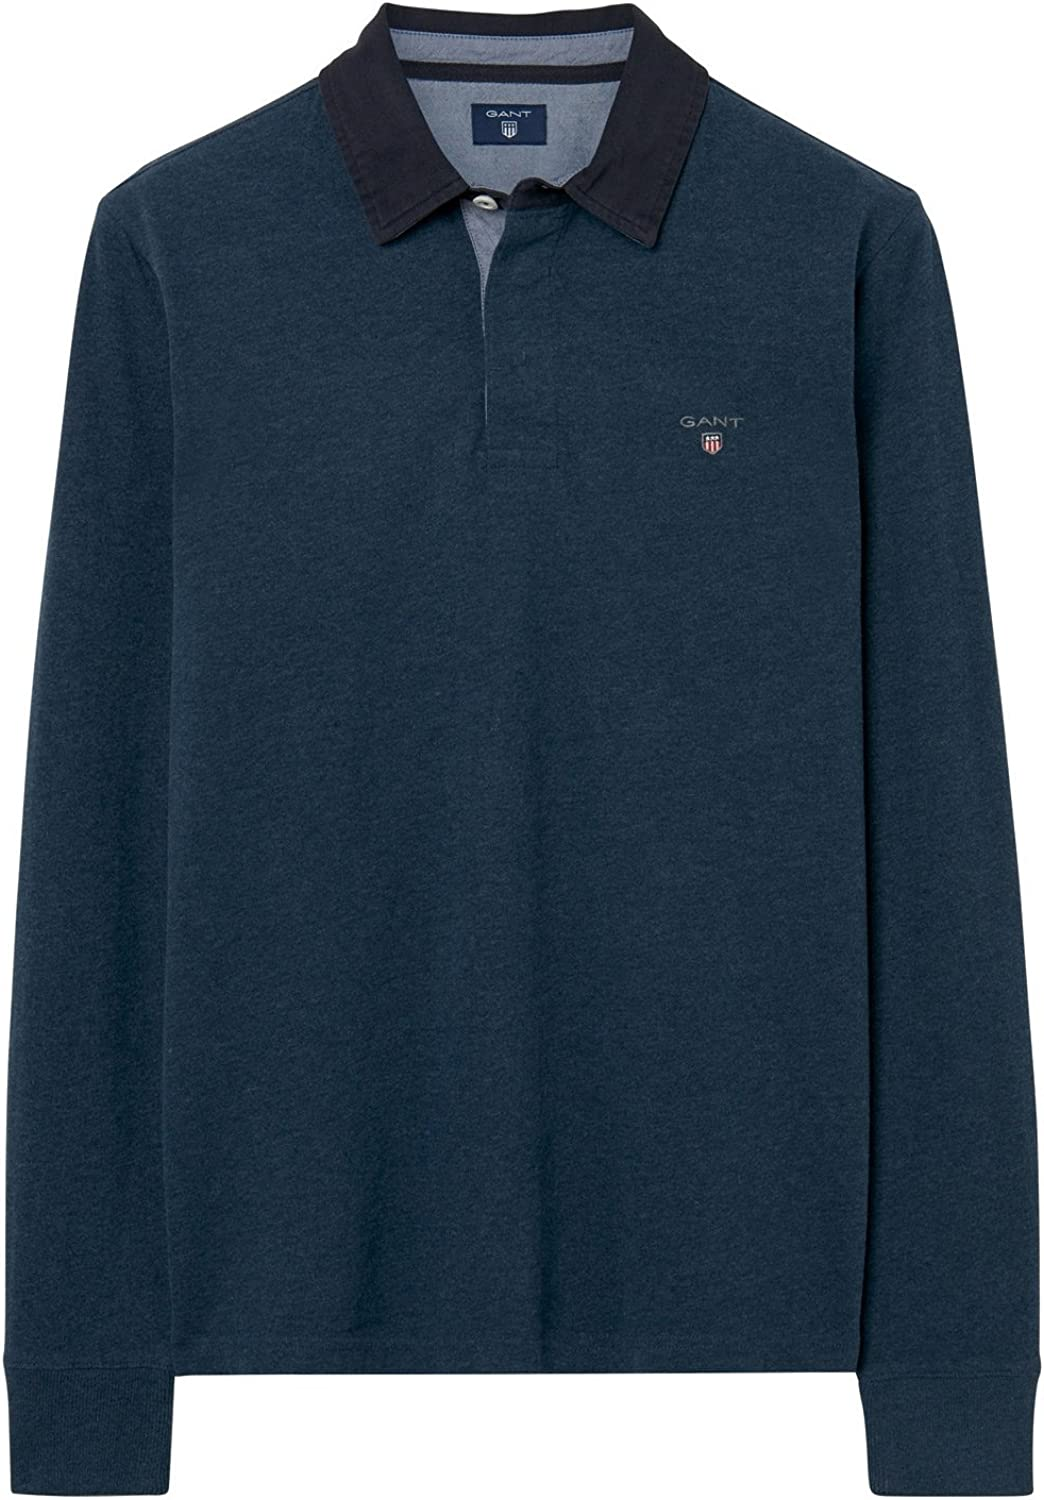 Gant Men's Blue 5 popular Long Sleeve Size Shirt in Bombing free shipping Rugby M